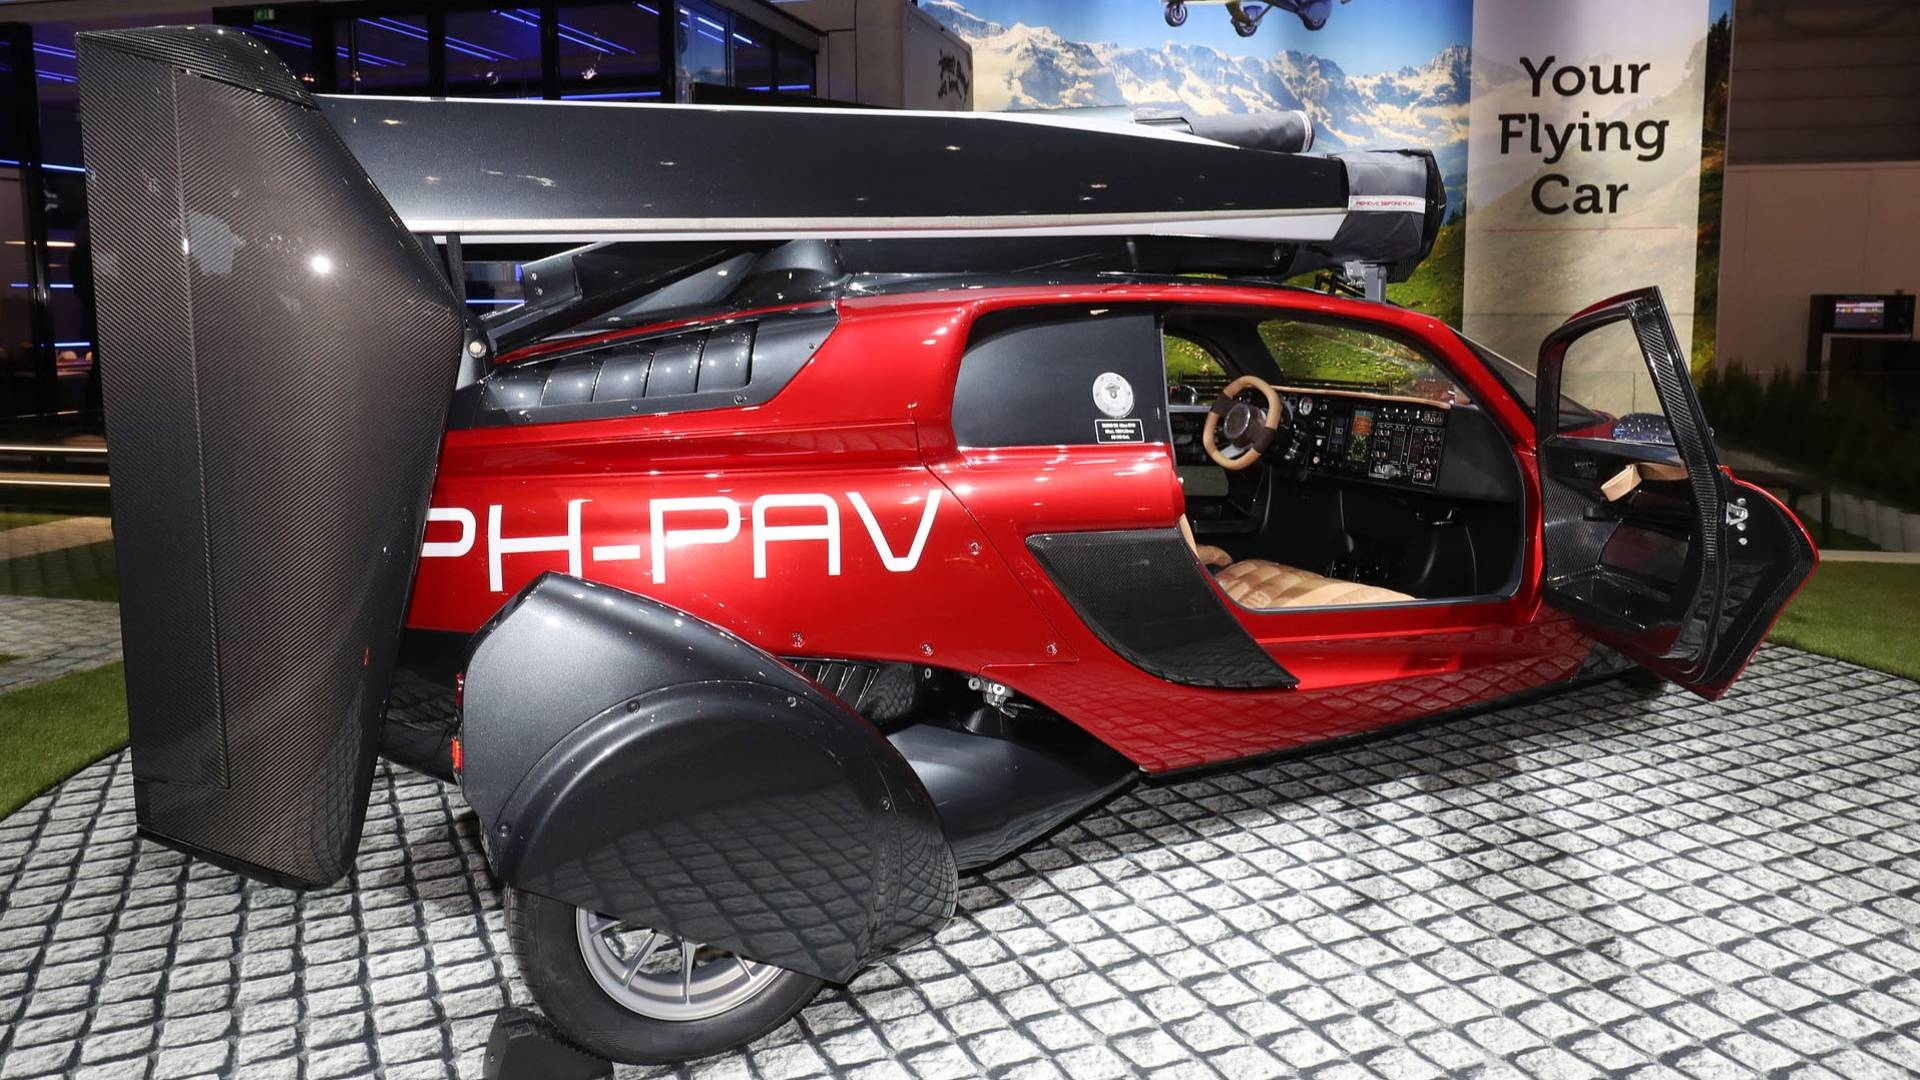 pal-v-liberty-flying-car (5)